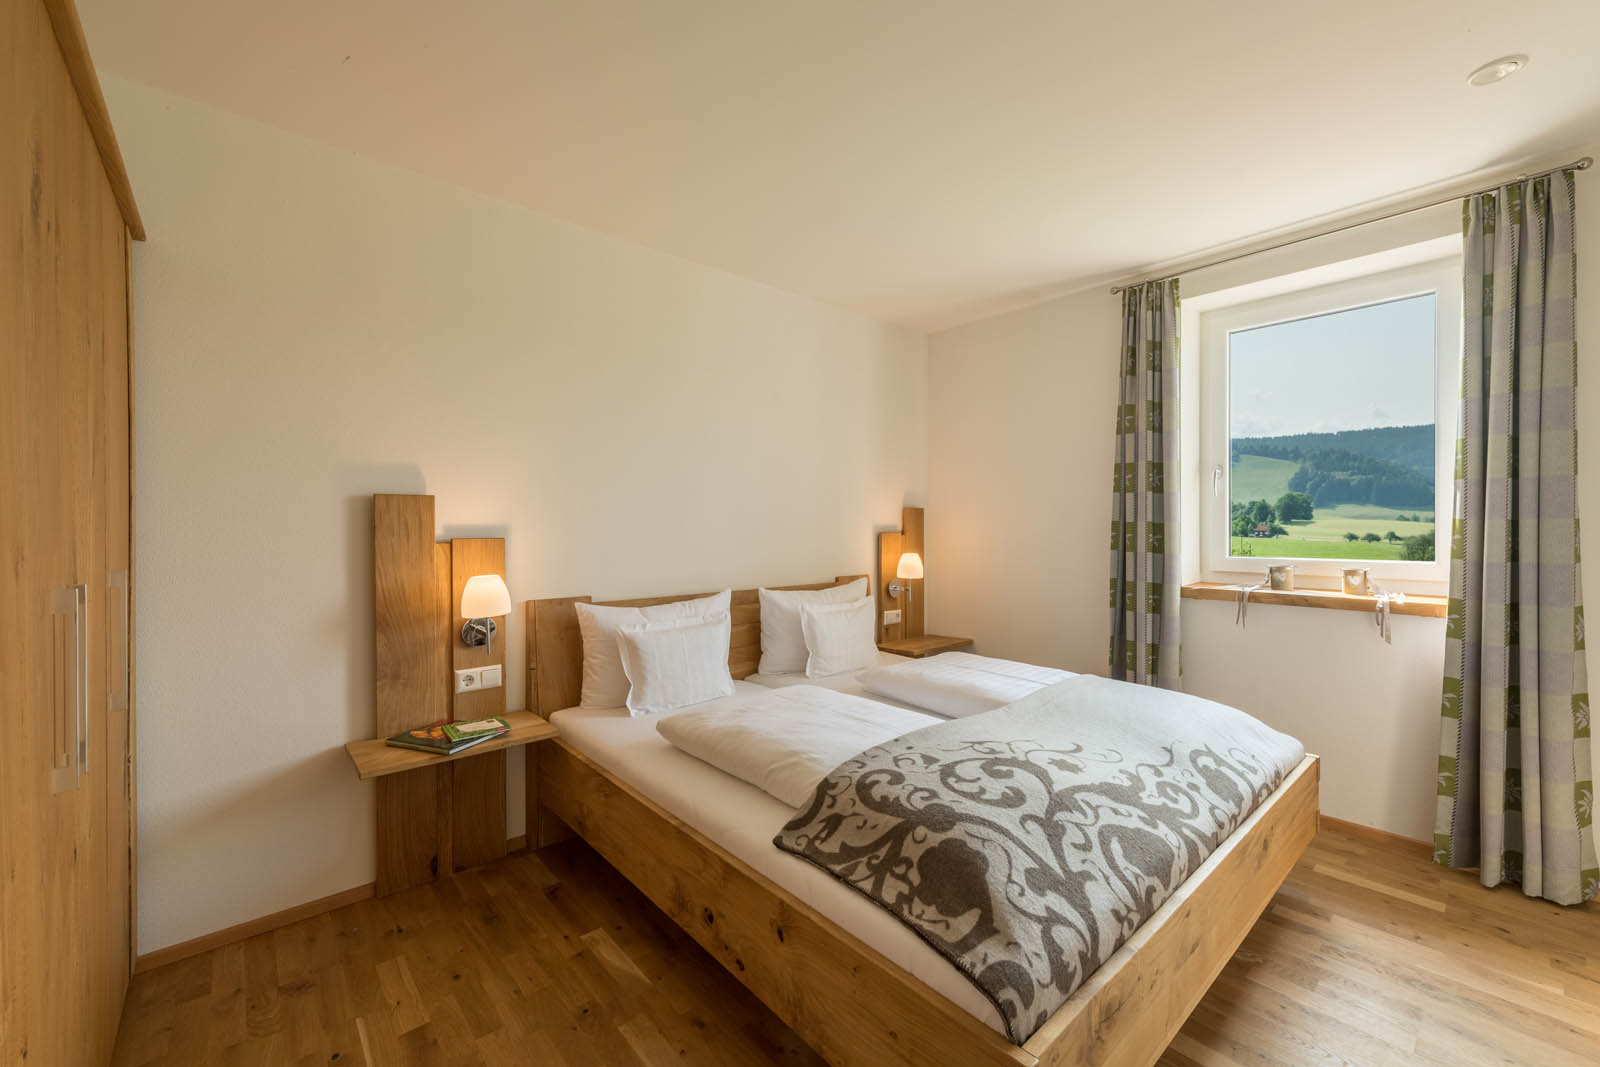 Spend the night in the Allgäu - Wellness Hotel Sontheim